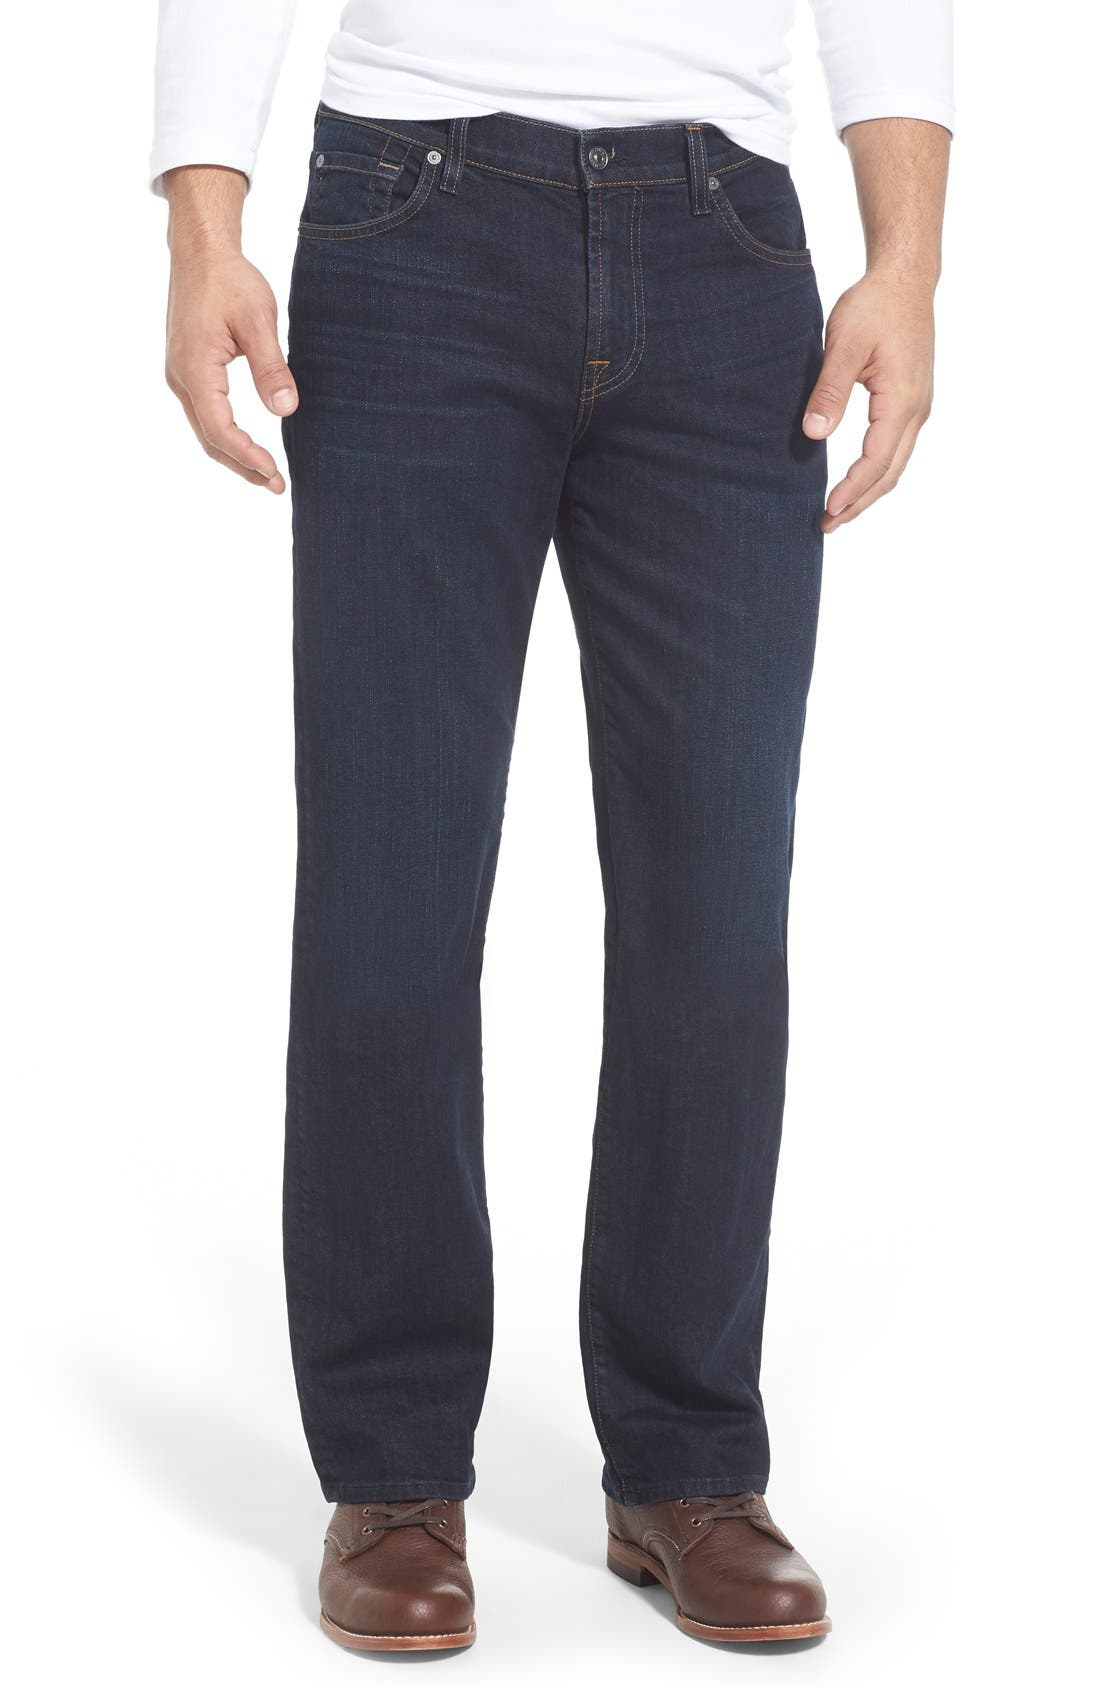 'Austyn- LuxePerformance' Relaxed Fit Jeans,                             Main thumbnail 2, color,